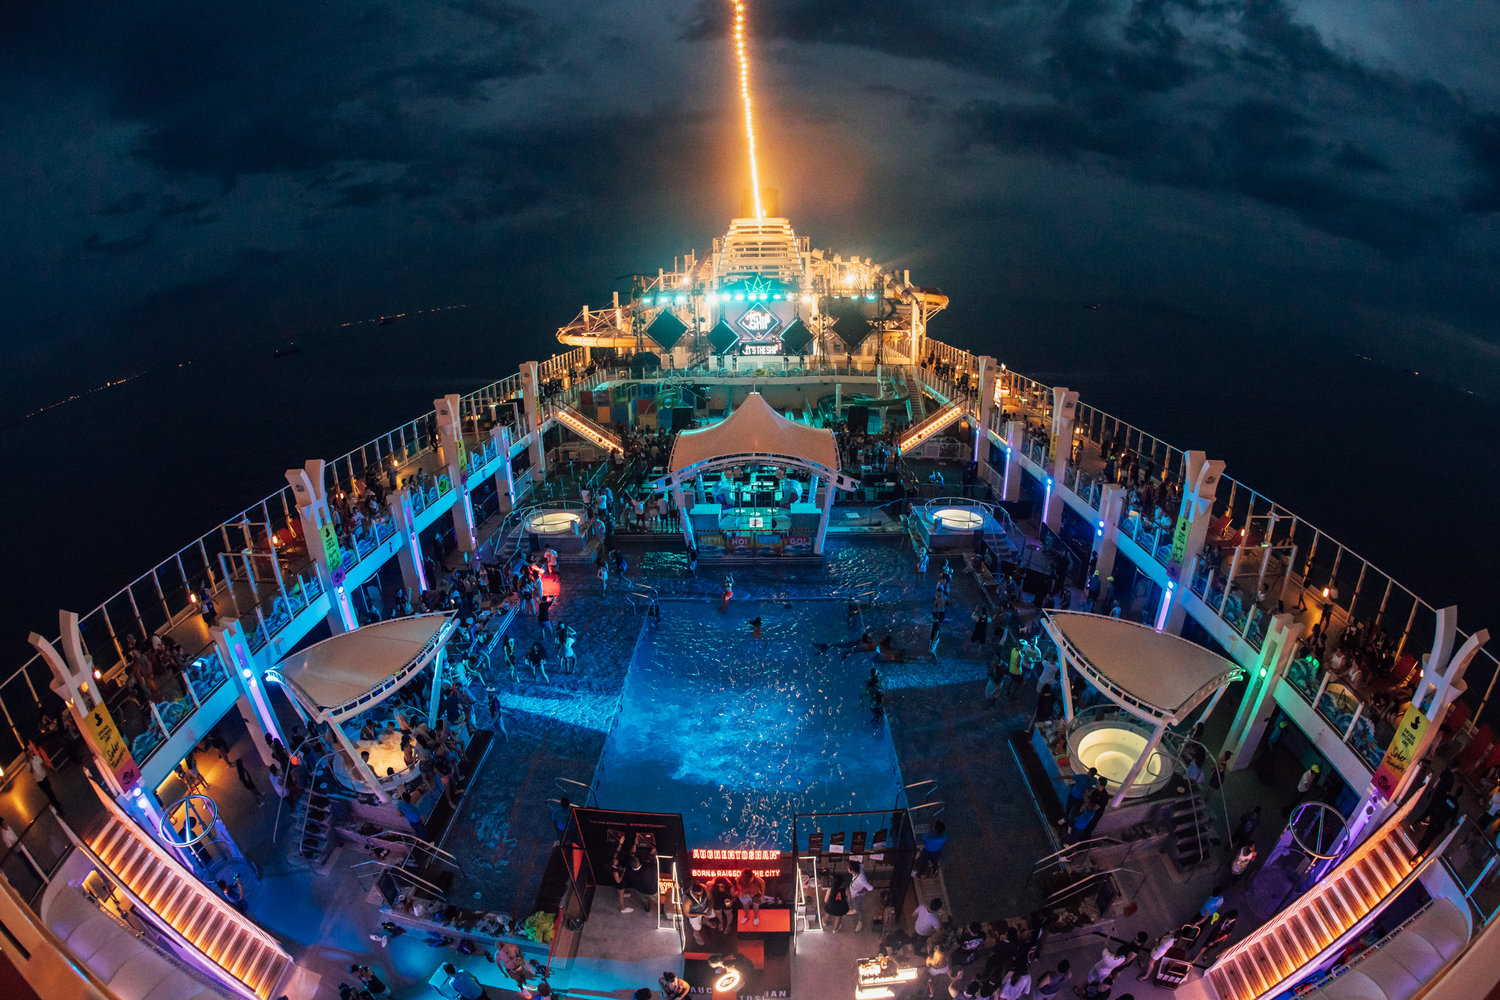 Asia's largest festival at sea, IT'S THE SHIP has ended with its 5th successful sailing, with all cabins completely sold out and a total of 4,000 shipmates in attendance